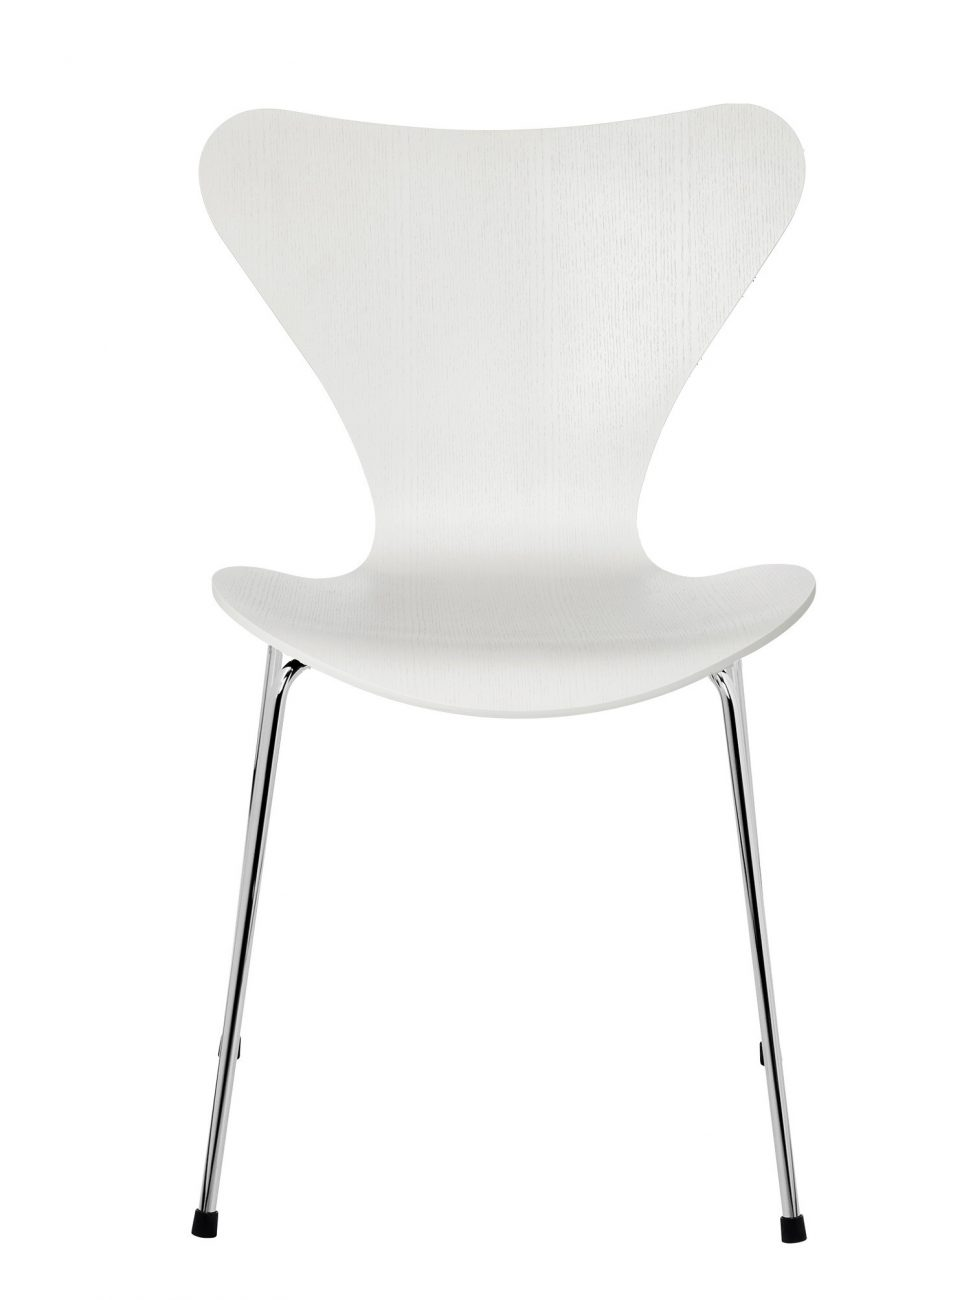 Jacky Chair White